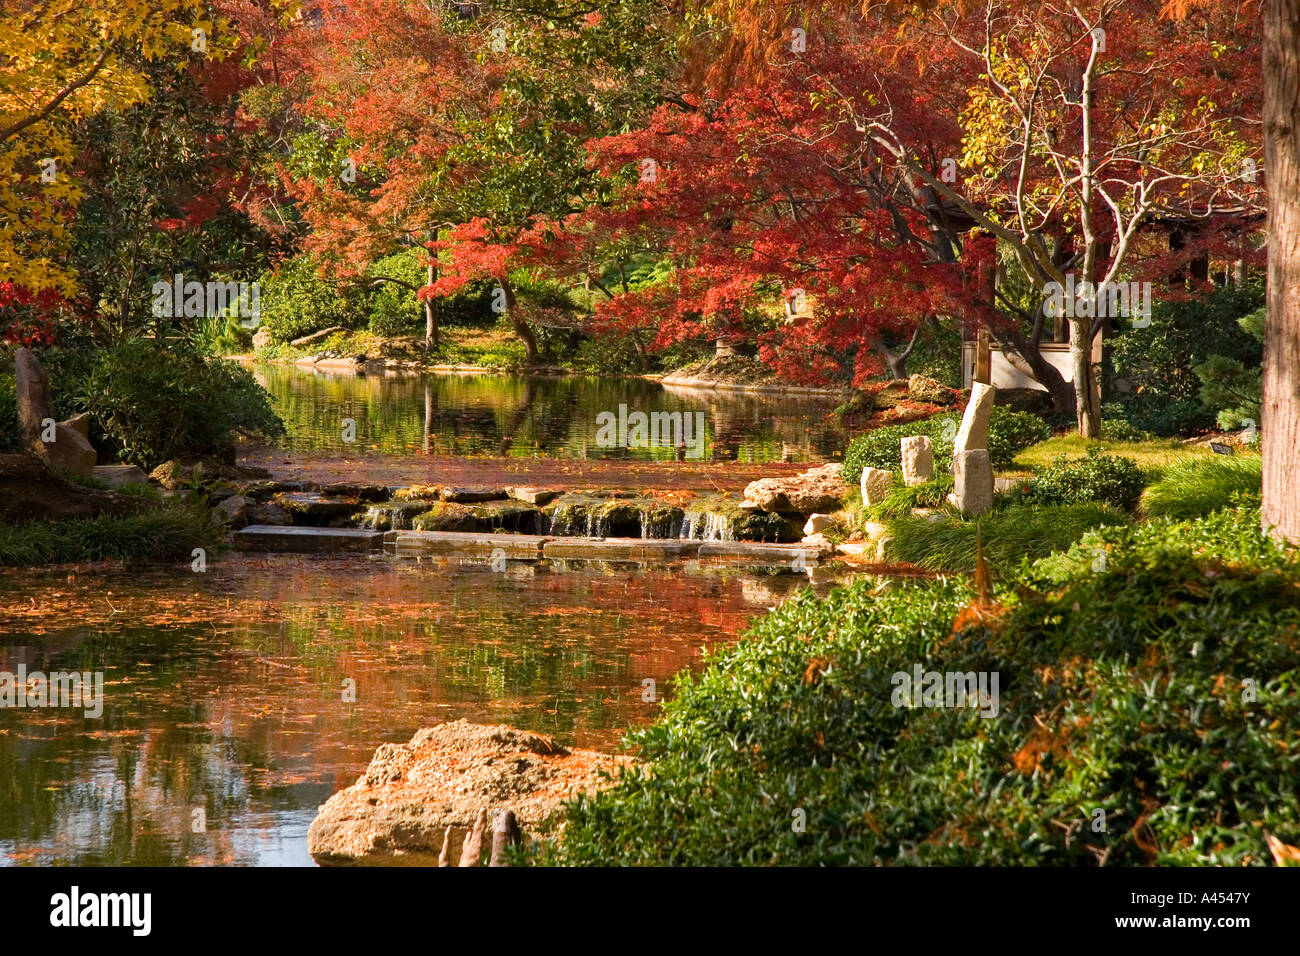 Fort Worth Botanical Gardens Stock Photos & Fort Worth Botanical ...